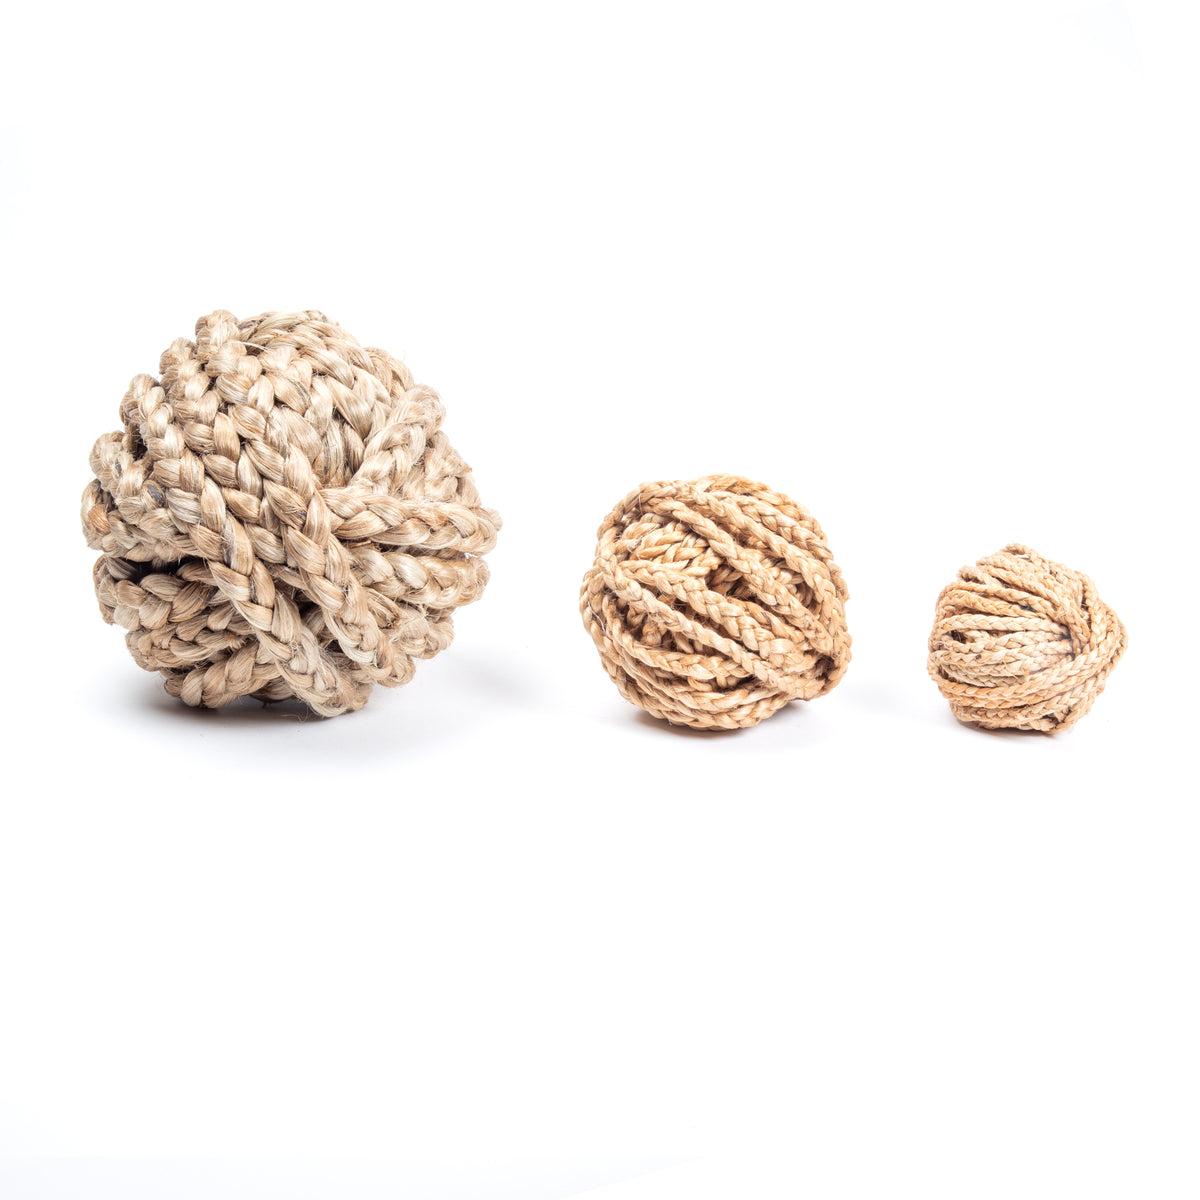 Braided Jute, 10m Bundle, W=0.5cm